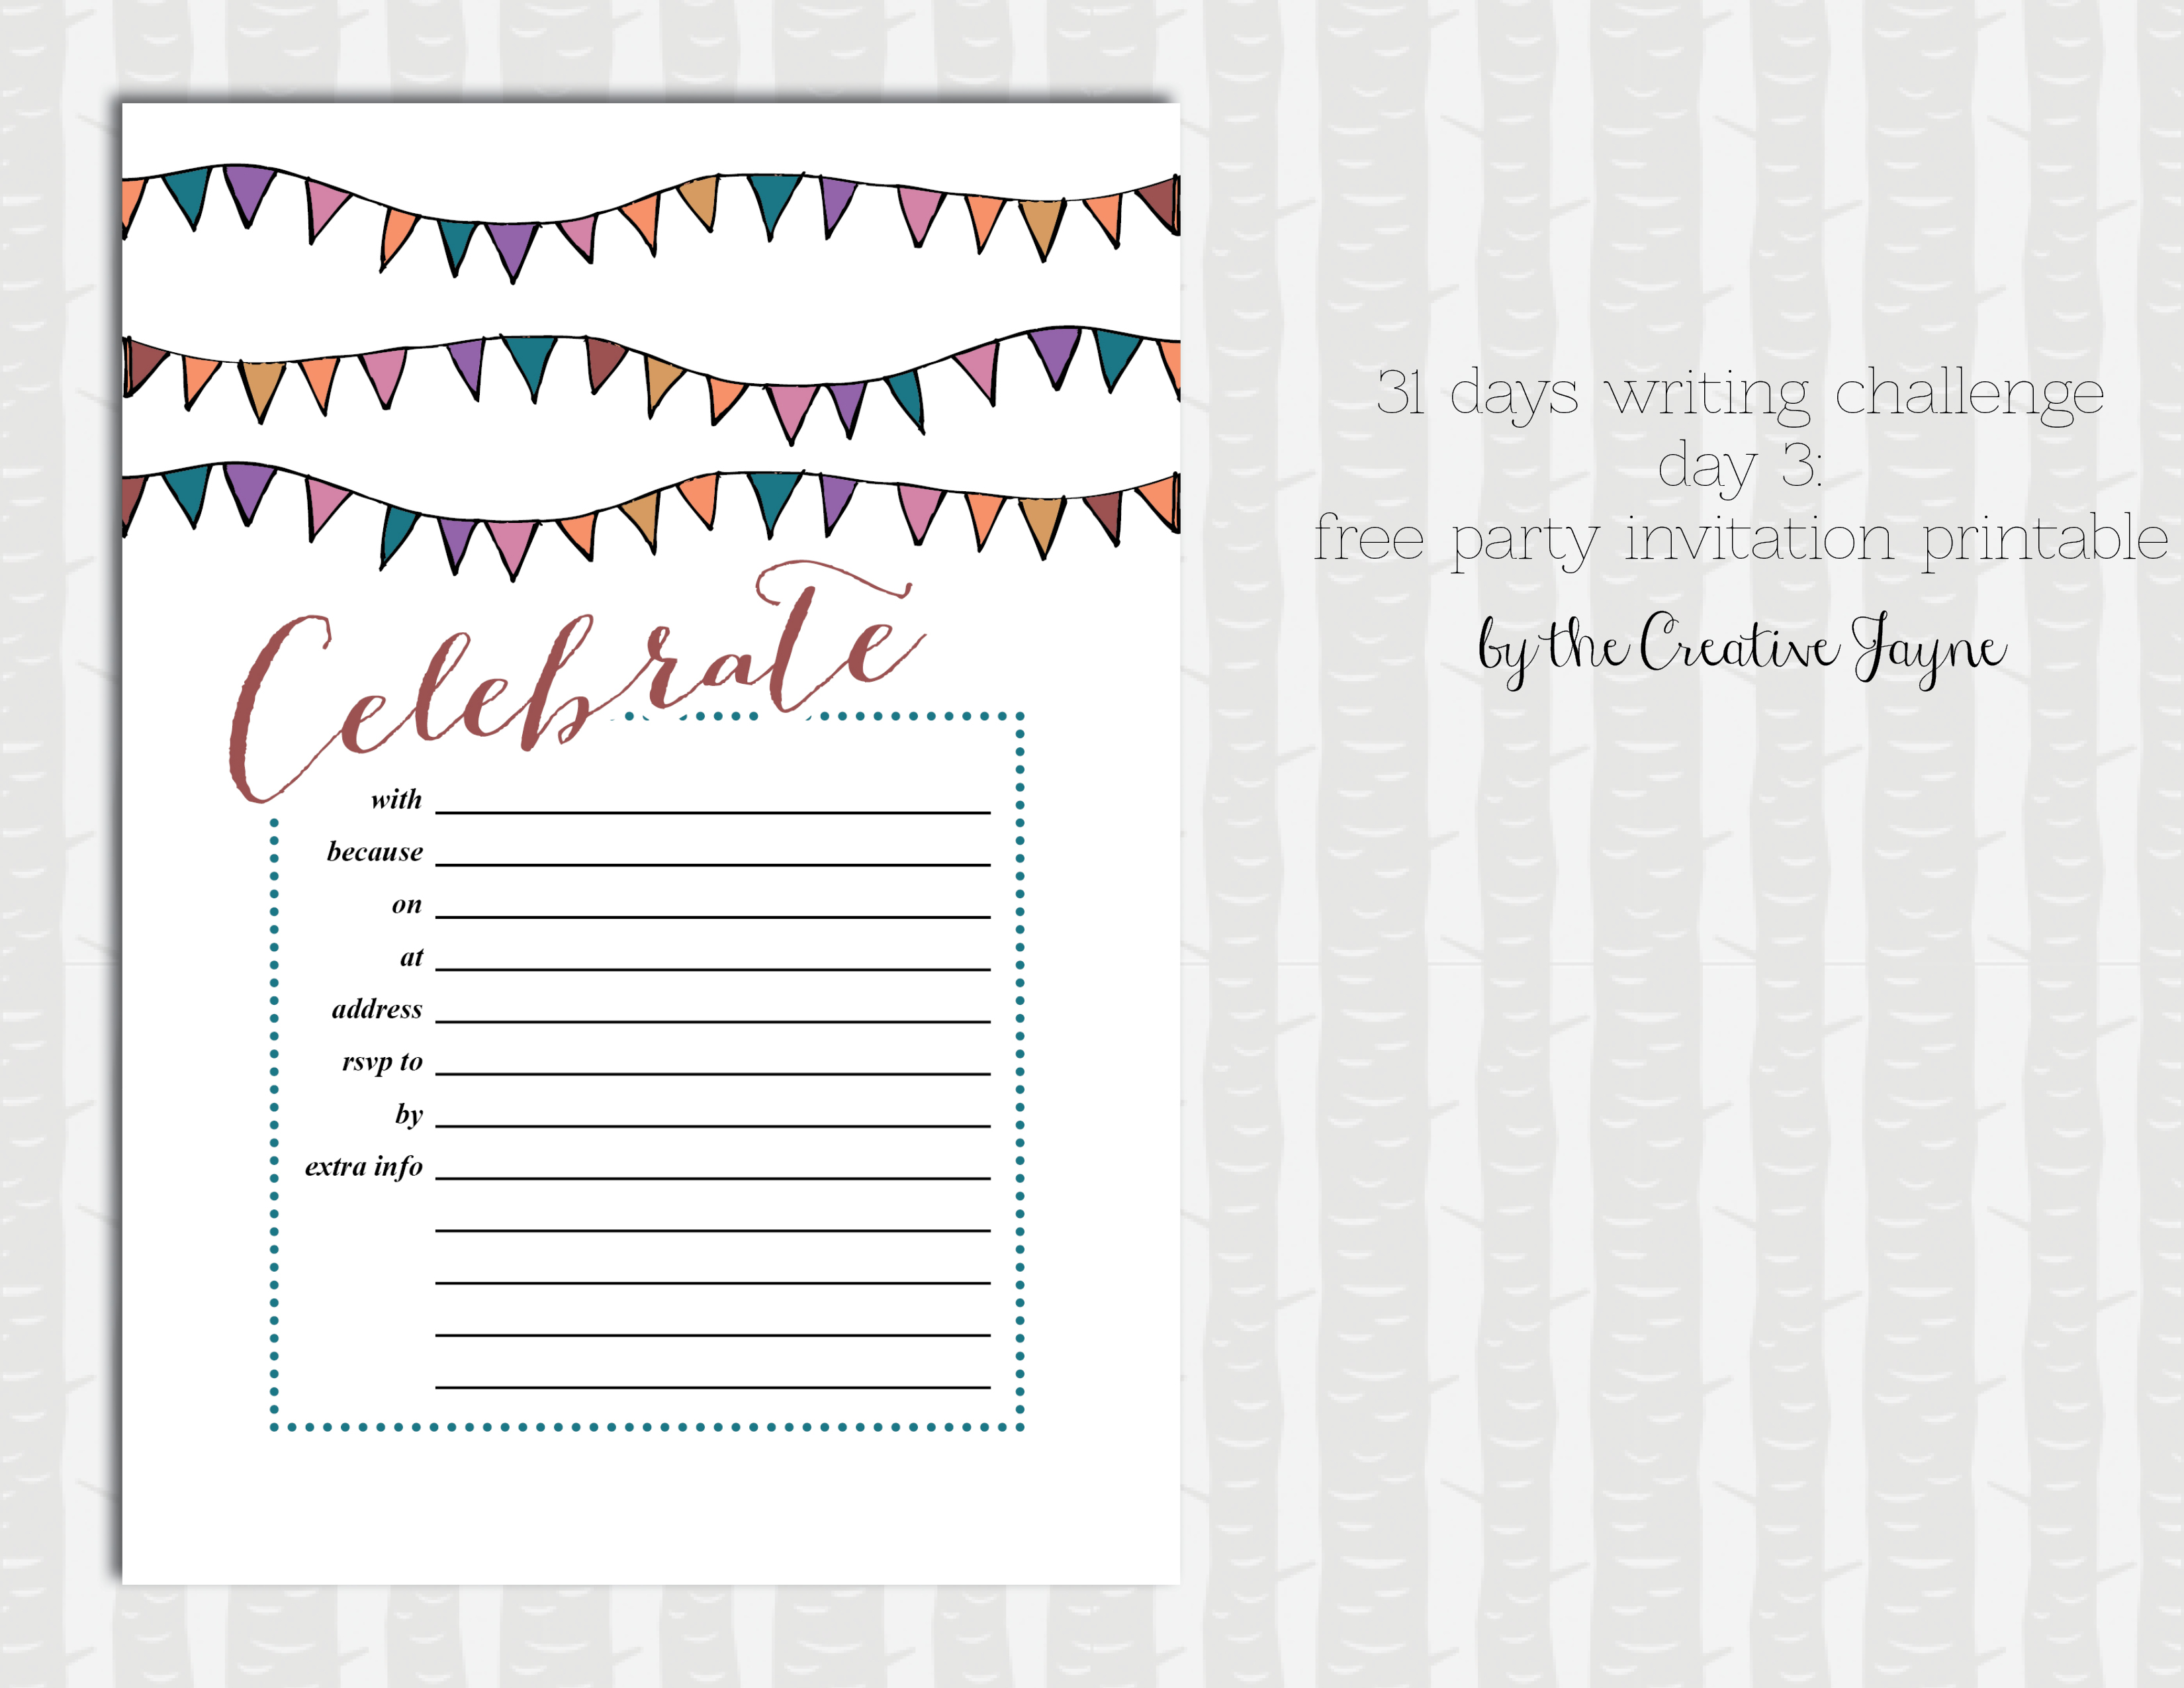 party invitation printable by the creative jayne